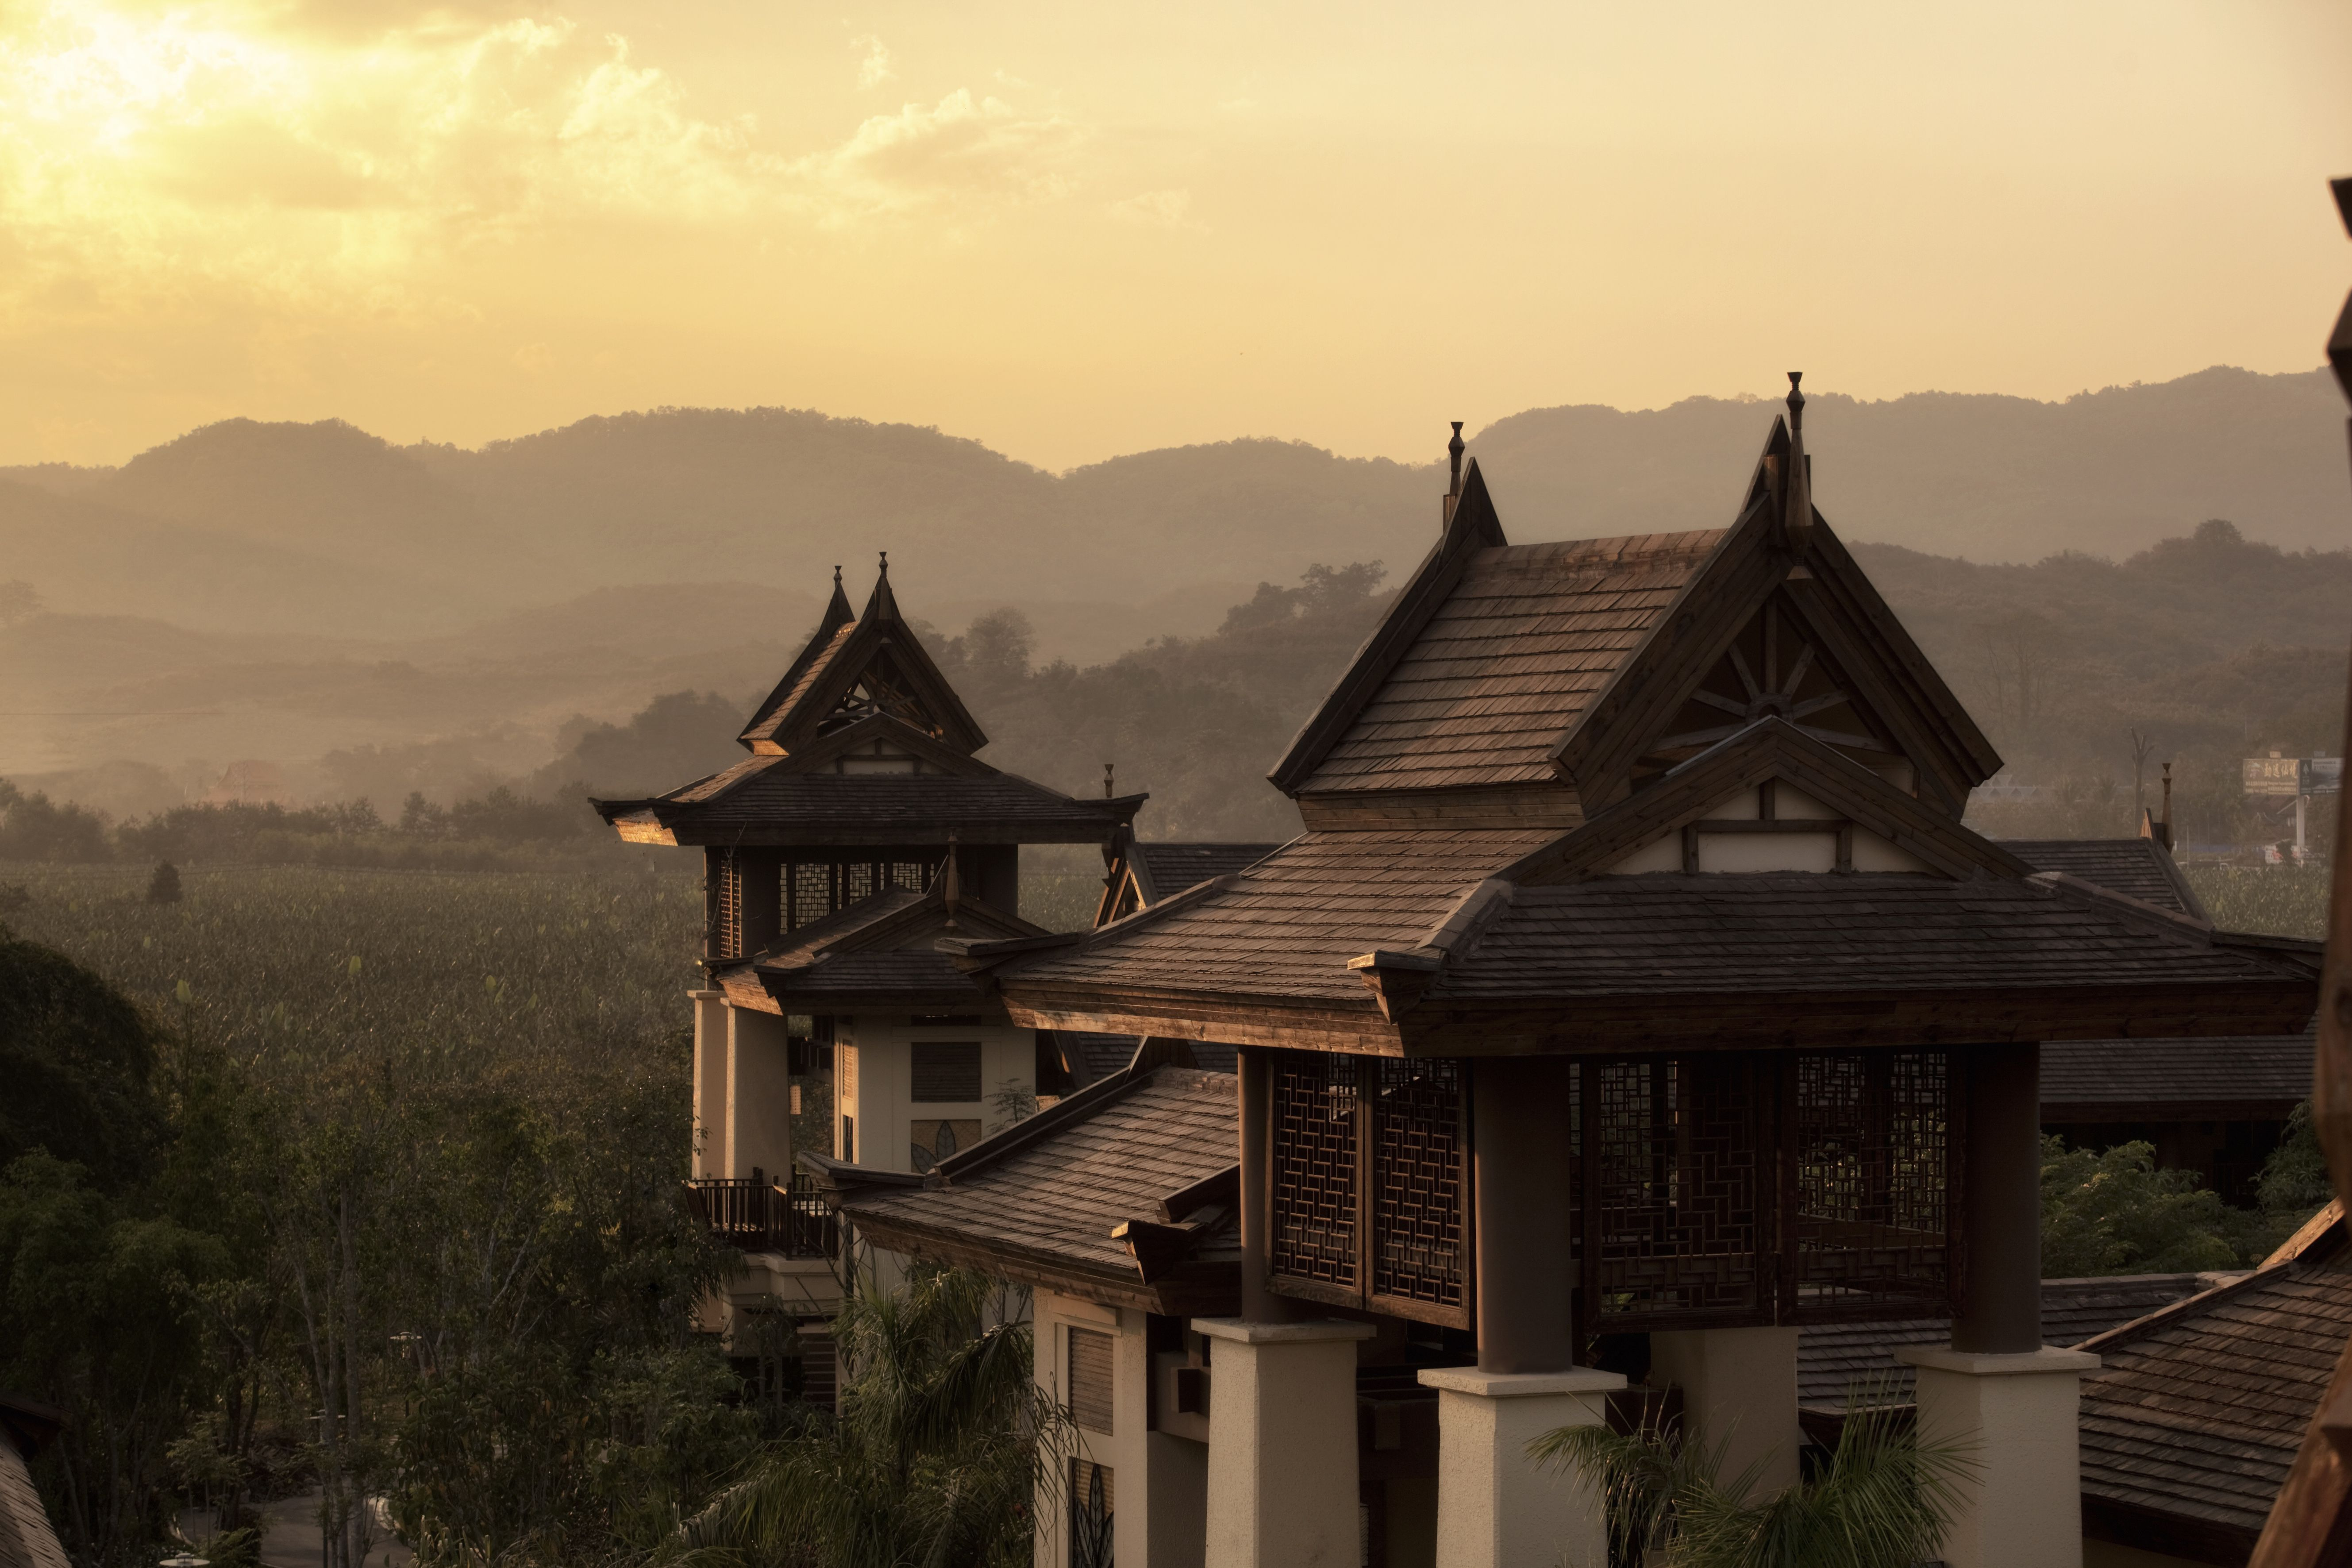 #Wanderlust House in the mountain. #Misty Mountain views and nature surroundings at #Anantara Xishuangbanna, Yunnan, China. Best destination to unwind!